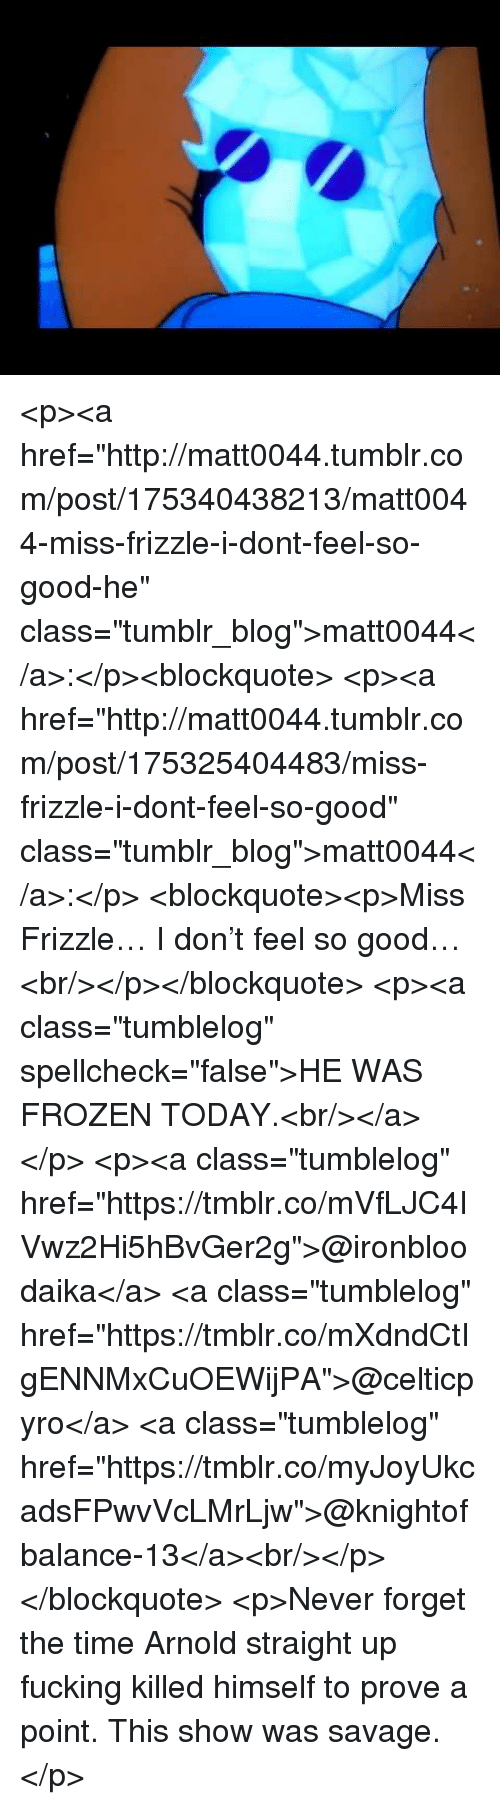 """Frozen, Savage, and Tumblr: <p><a href=""""http://matt0044.tumblr.com/post/175340438213/matt0044-miss-frizzle-i-dont-feel-so-good-he"""" class=""""tumblr_blog"""">matt0044</a>:</p><blockquote> <p><a href=""""http://matt0044.tumblr.com/post/175325404483/miss-frizzle-i-dont-feel-so-good"""" class=""""tumblr_blog"""">matt0044</a>:</p> <blockquote><p>Miss Frizzle… I don't feel so good…<br/></p></blockquote> <p><a class=""""tumblelog"""" spellcheck=""""false"""">HE WAS FROZEN TODAY.<br/></a></p> <p><a class=""""tumblelog"""" href=""""https://tmblr.co/mVfLJC4IVwz2Hi5hBvGer2g"""">@ironbloodaika</a> <a class=""""tumblelog"""" href=""""https://tmblr.co/mXdndCtIgENNMxCuOEWijPA"""">@celticpyro</a> <a class=""""tumblelog"""" href=""""https://tmblr.co/myJoyUkcadsFPwvVcLMrLjw"""">@knightofbalance-13</a><br/></p> </blockquote>  <p>Never forget the time Arnold straight up fucking killed himself to prove a point. This show was savage.</p>"""